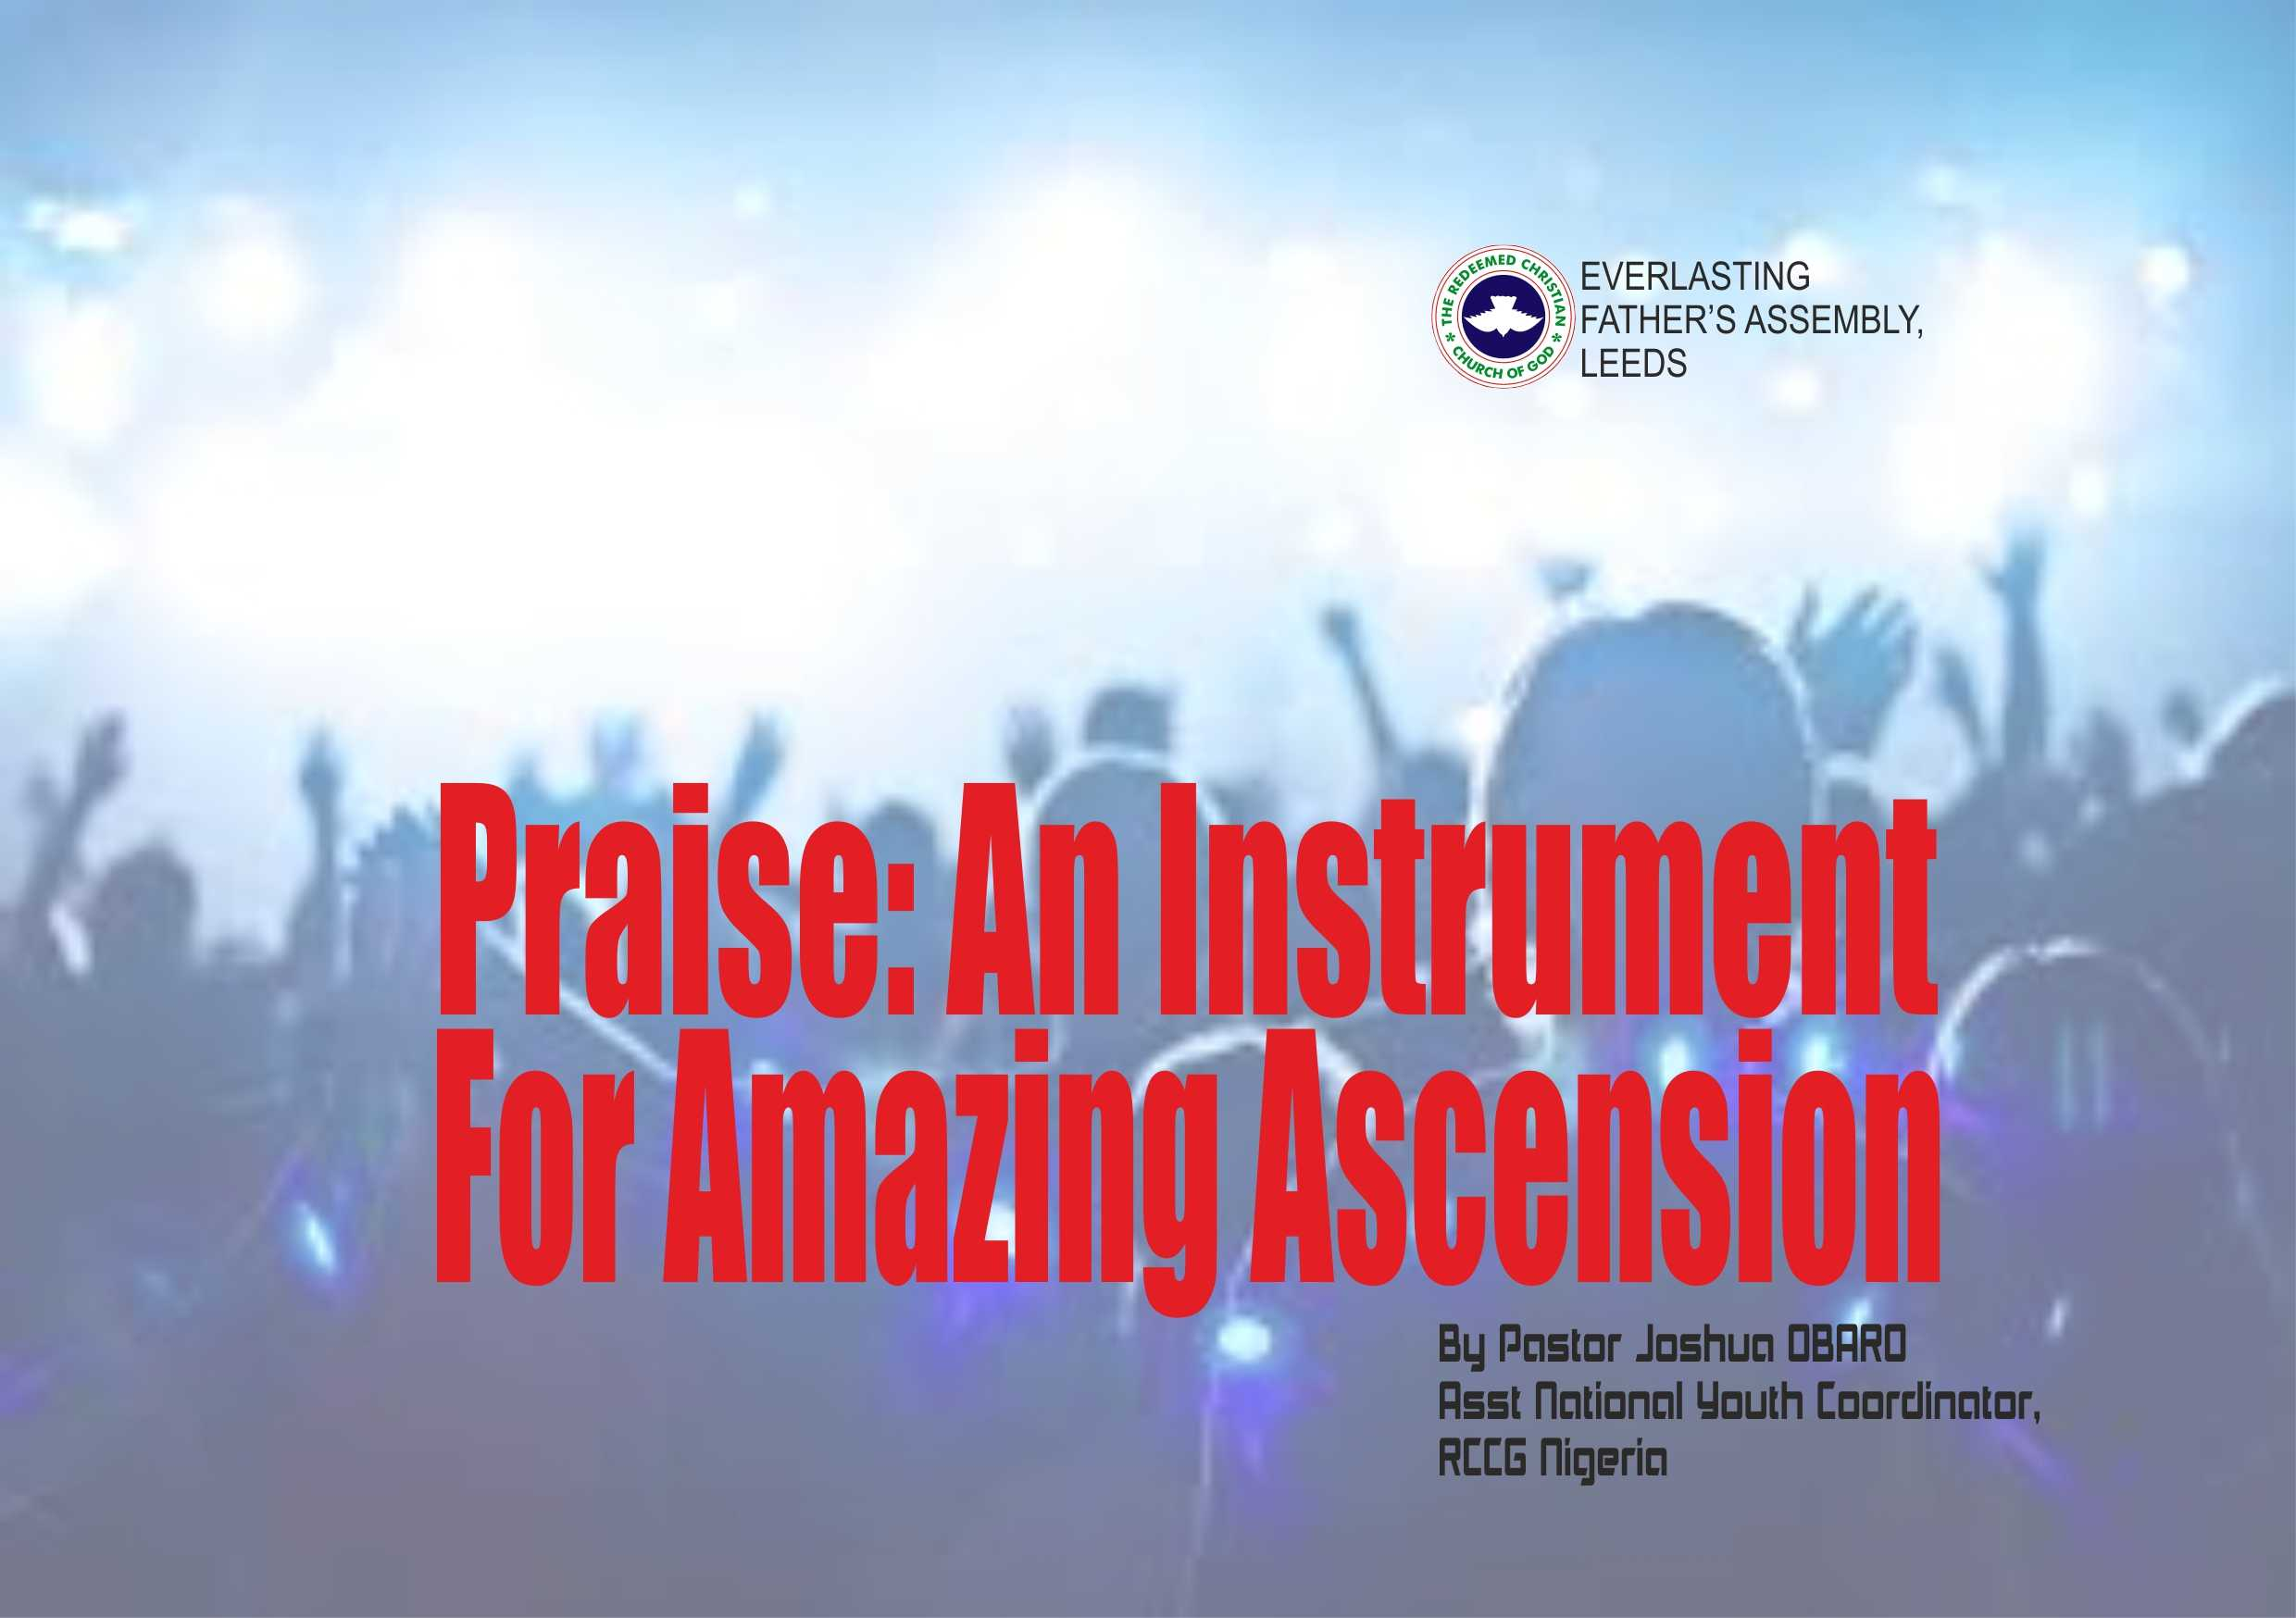 Praise: An Instrument For Amazing Ascension, by Pastor